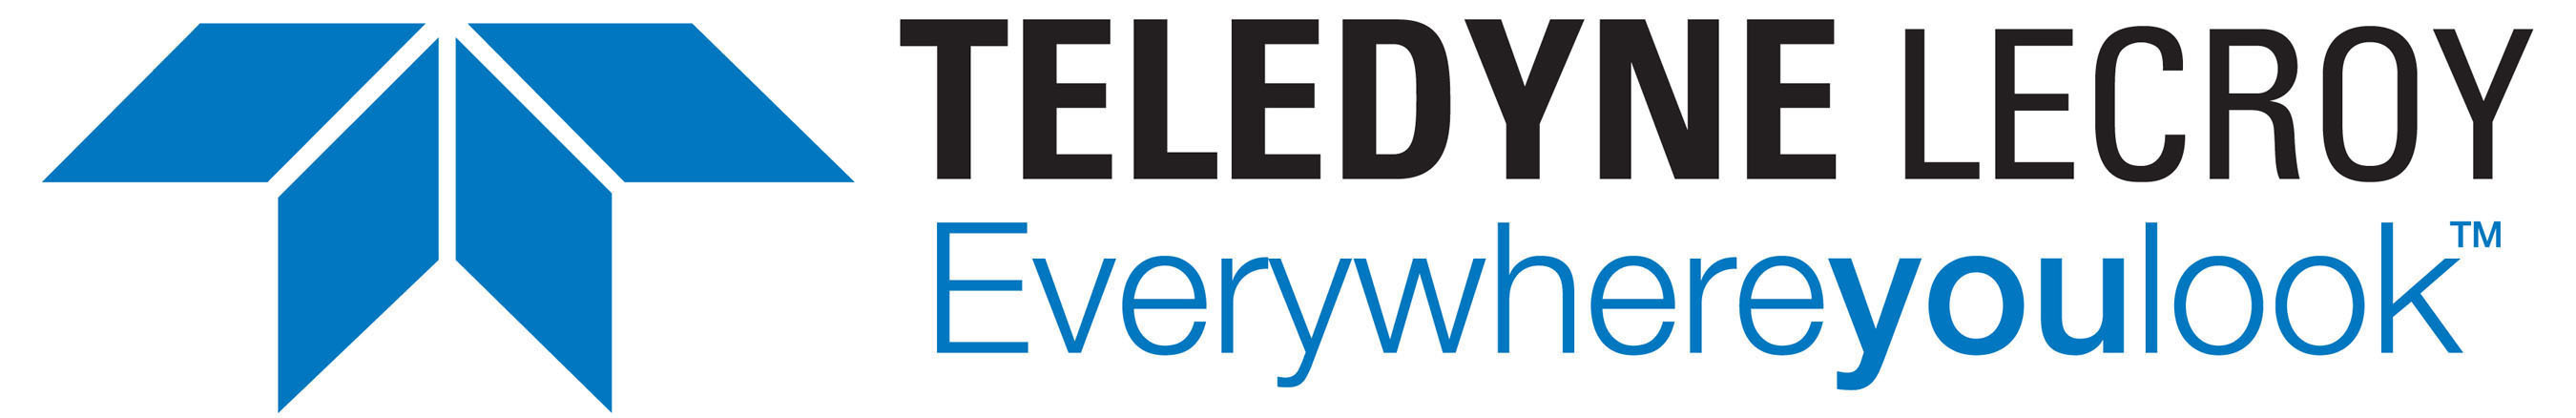 Teledyne LeCroy is a leading provider of oscilloscopes, protocol analyzers and related test and measurement ...